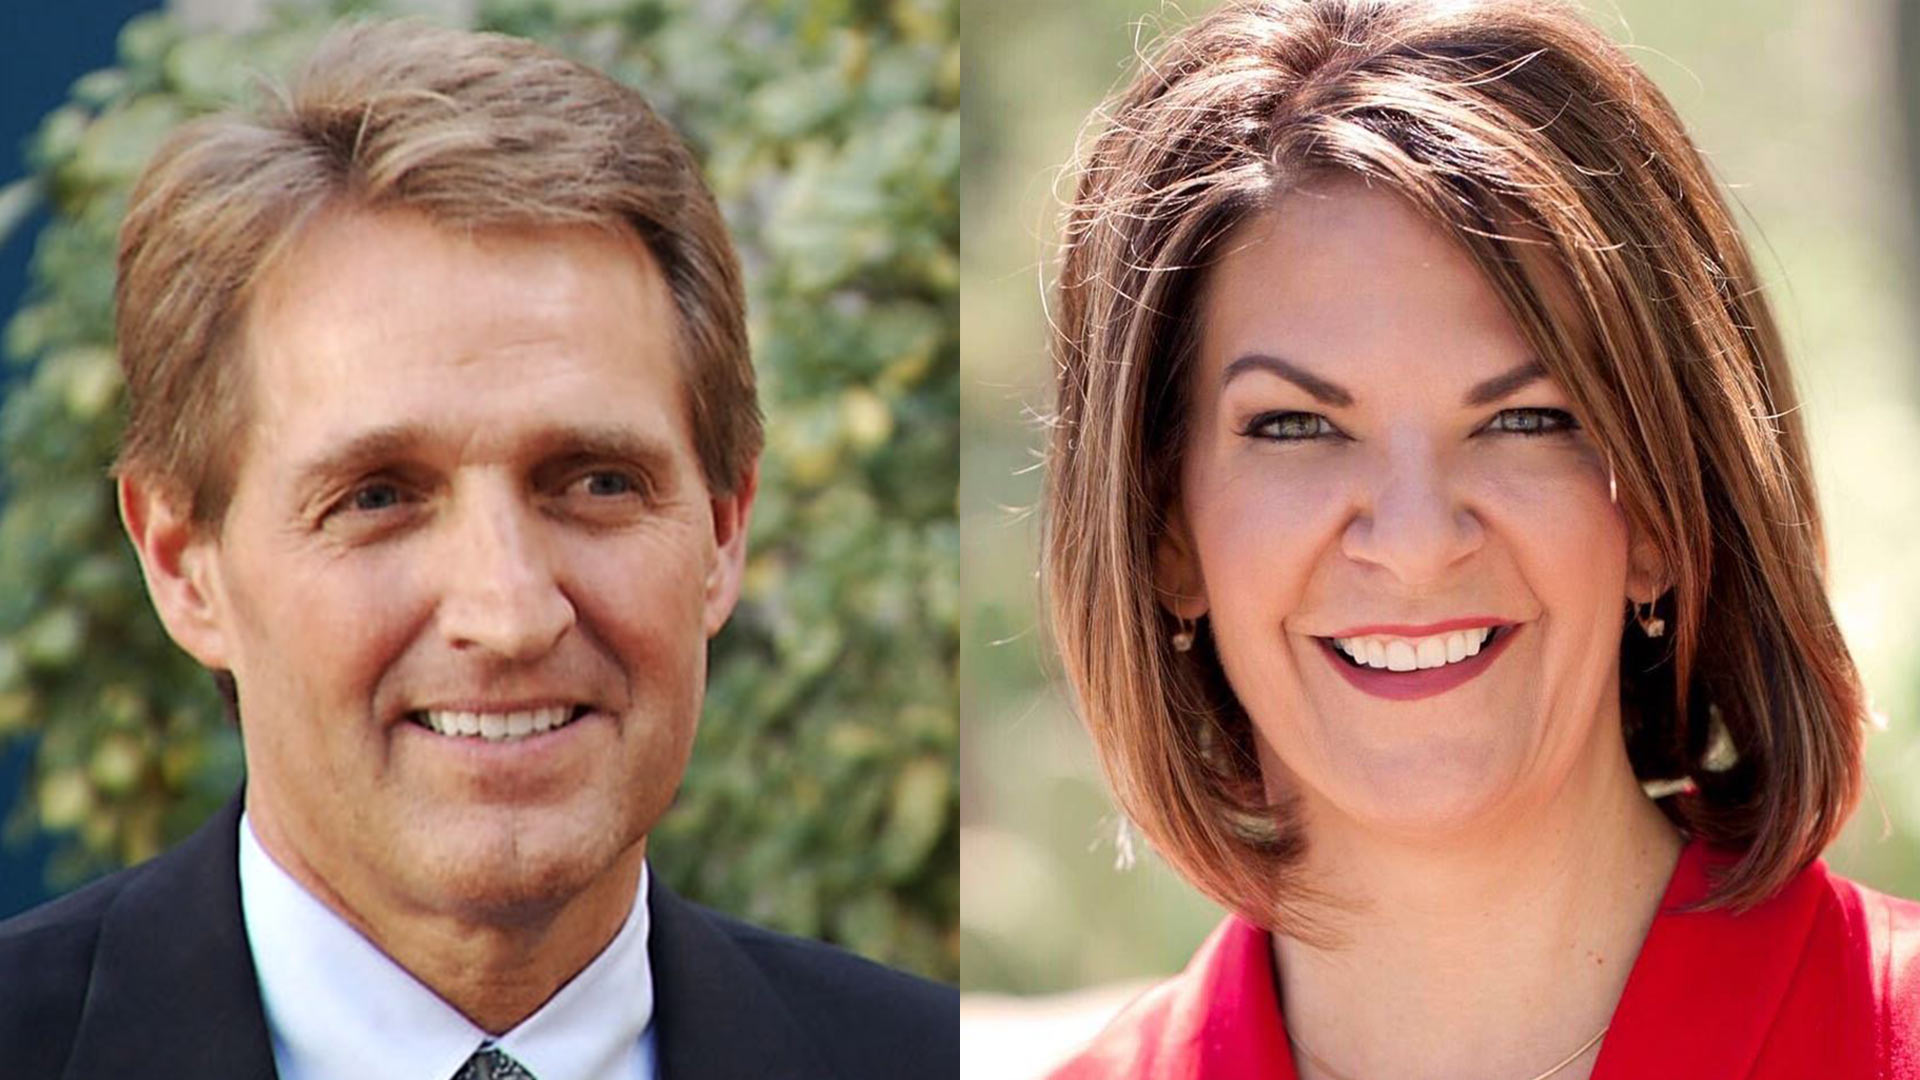 U.S. Sen. Jeff Flake and Kelli Ward, a Republican challenger for his seat.